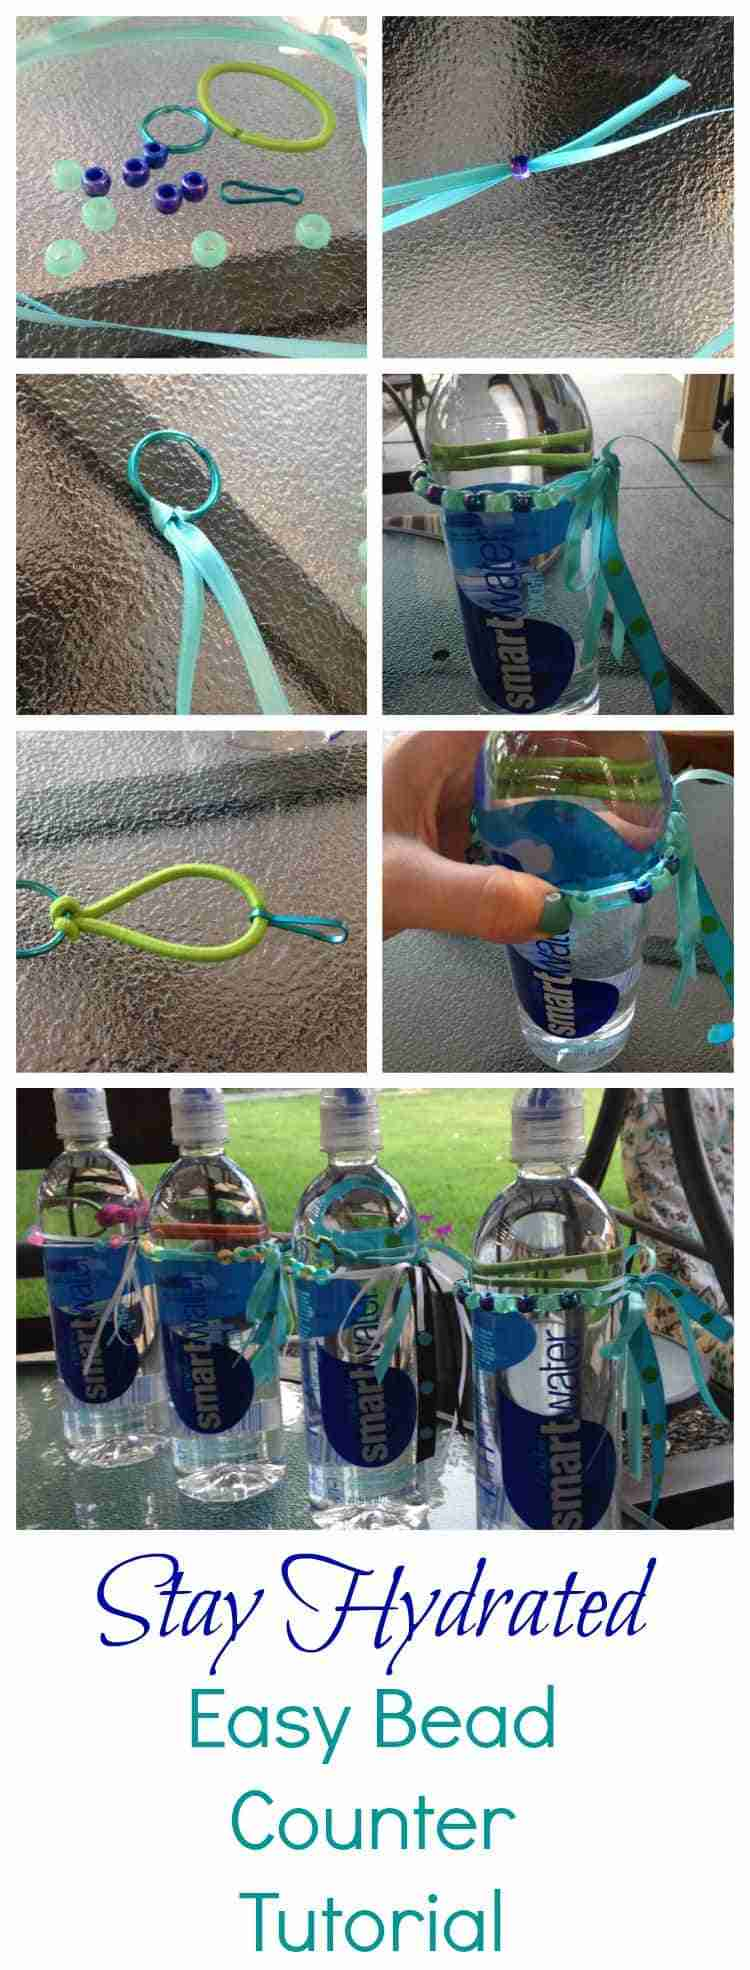 Easy Bead Counter Tutorial for Water Bottles! Stay Hydrated by Making Sure You Drink Enough Water!